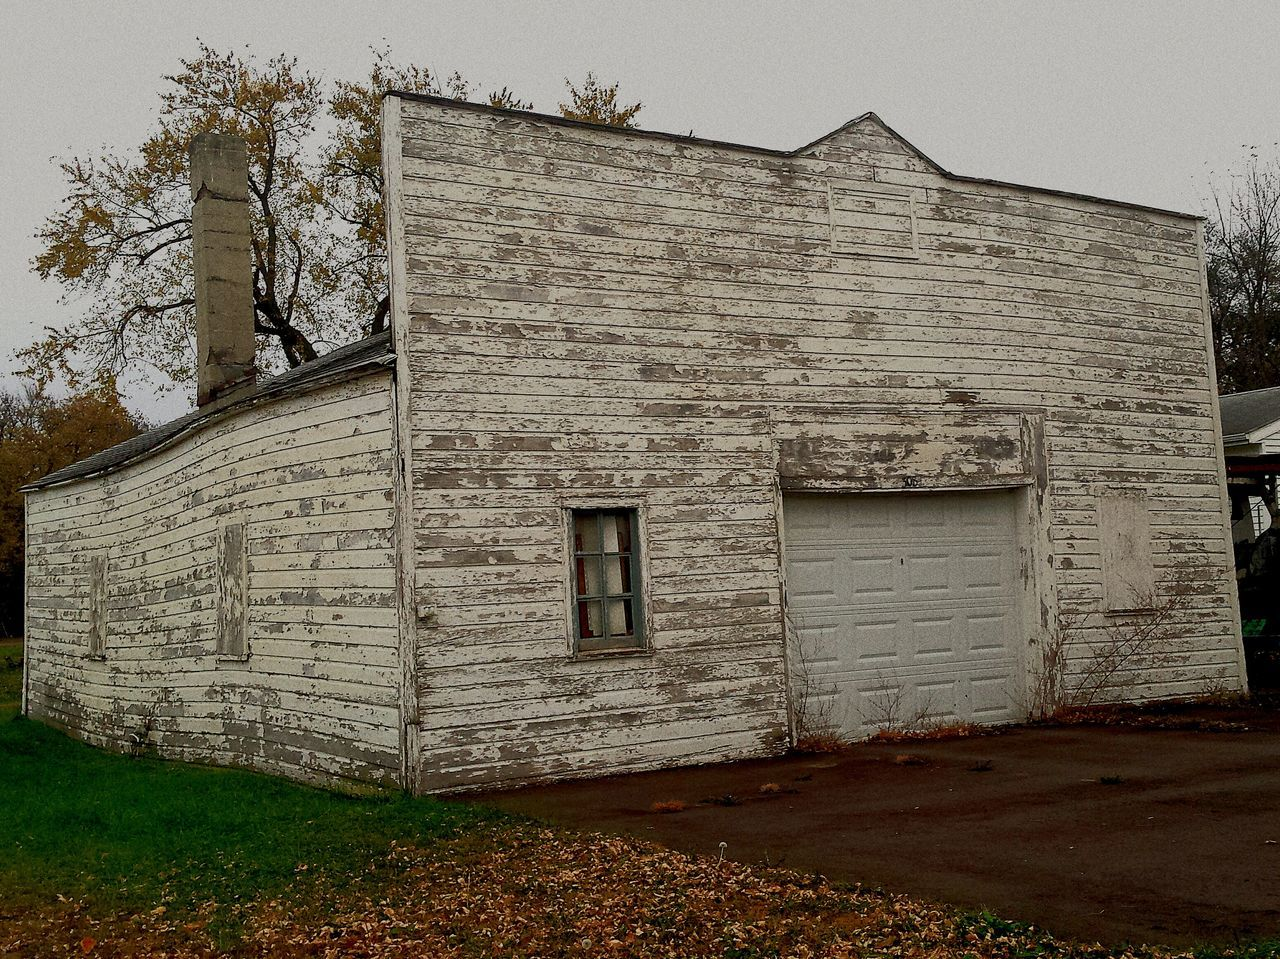 architecture, built structure, building exterior, house, no people, outdoors, abandoned, day, tree, sky